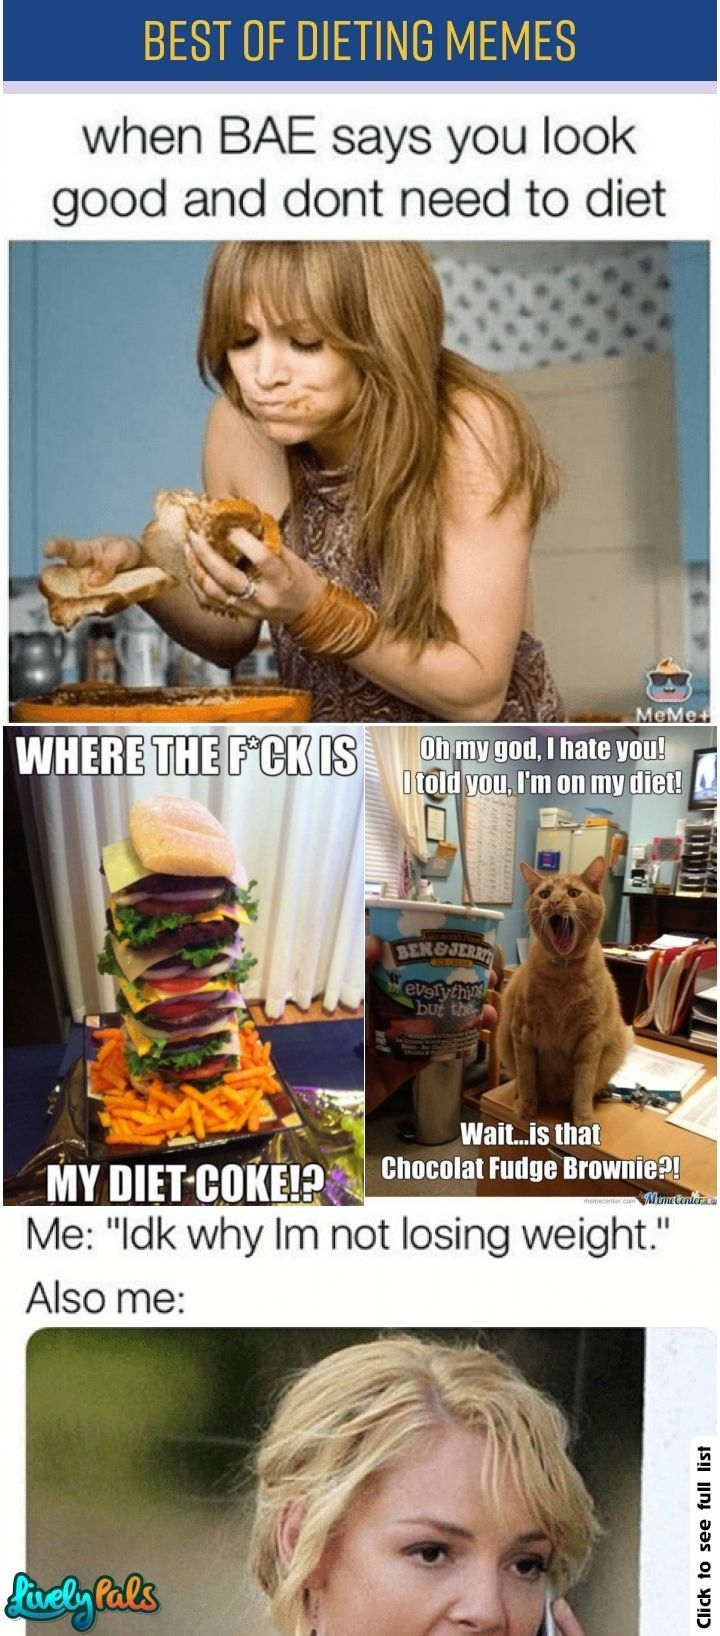 35 Extremely Hilarious And Relatable Dieting Memes Dieting Memes Reality Bites Selfcontrol Bestofdieting Livelypals Relatable Diet Meme Memes